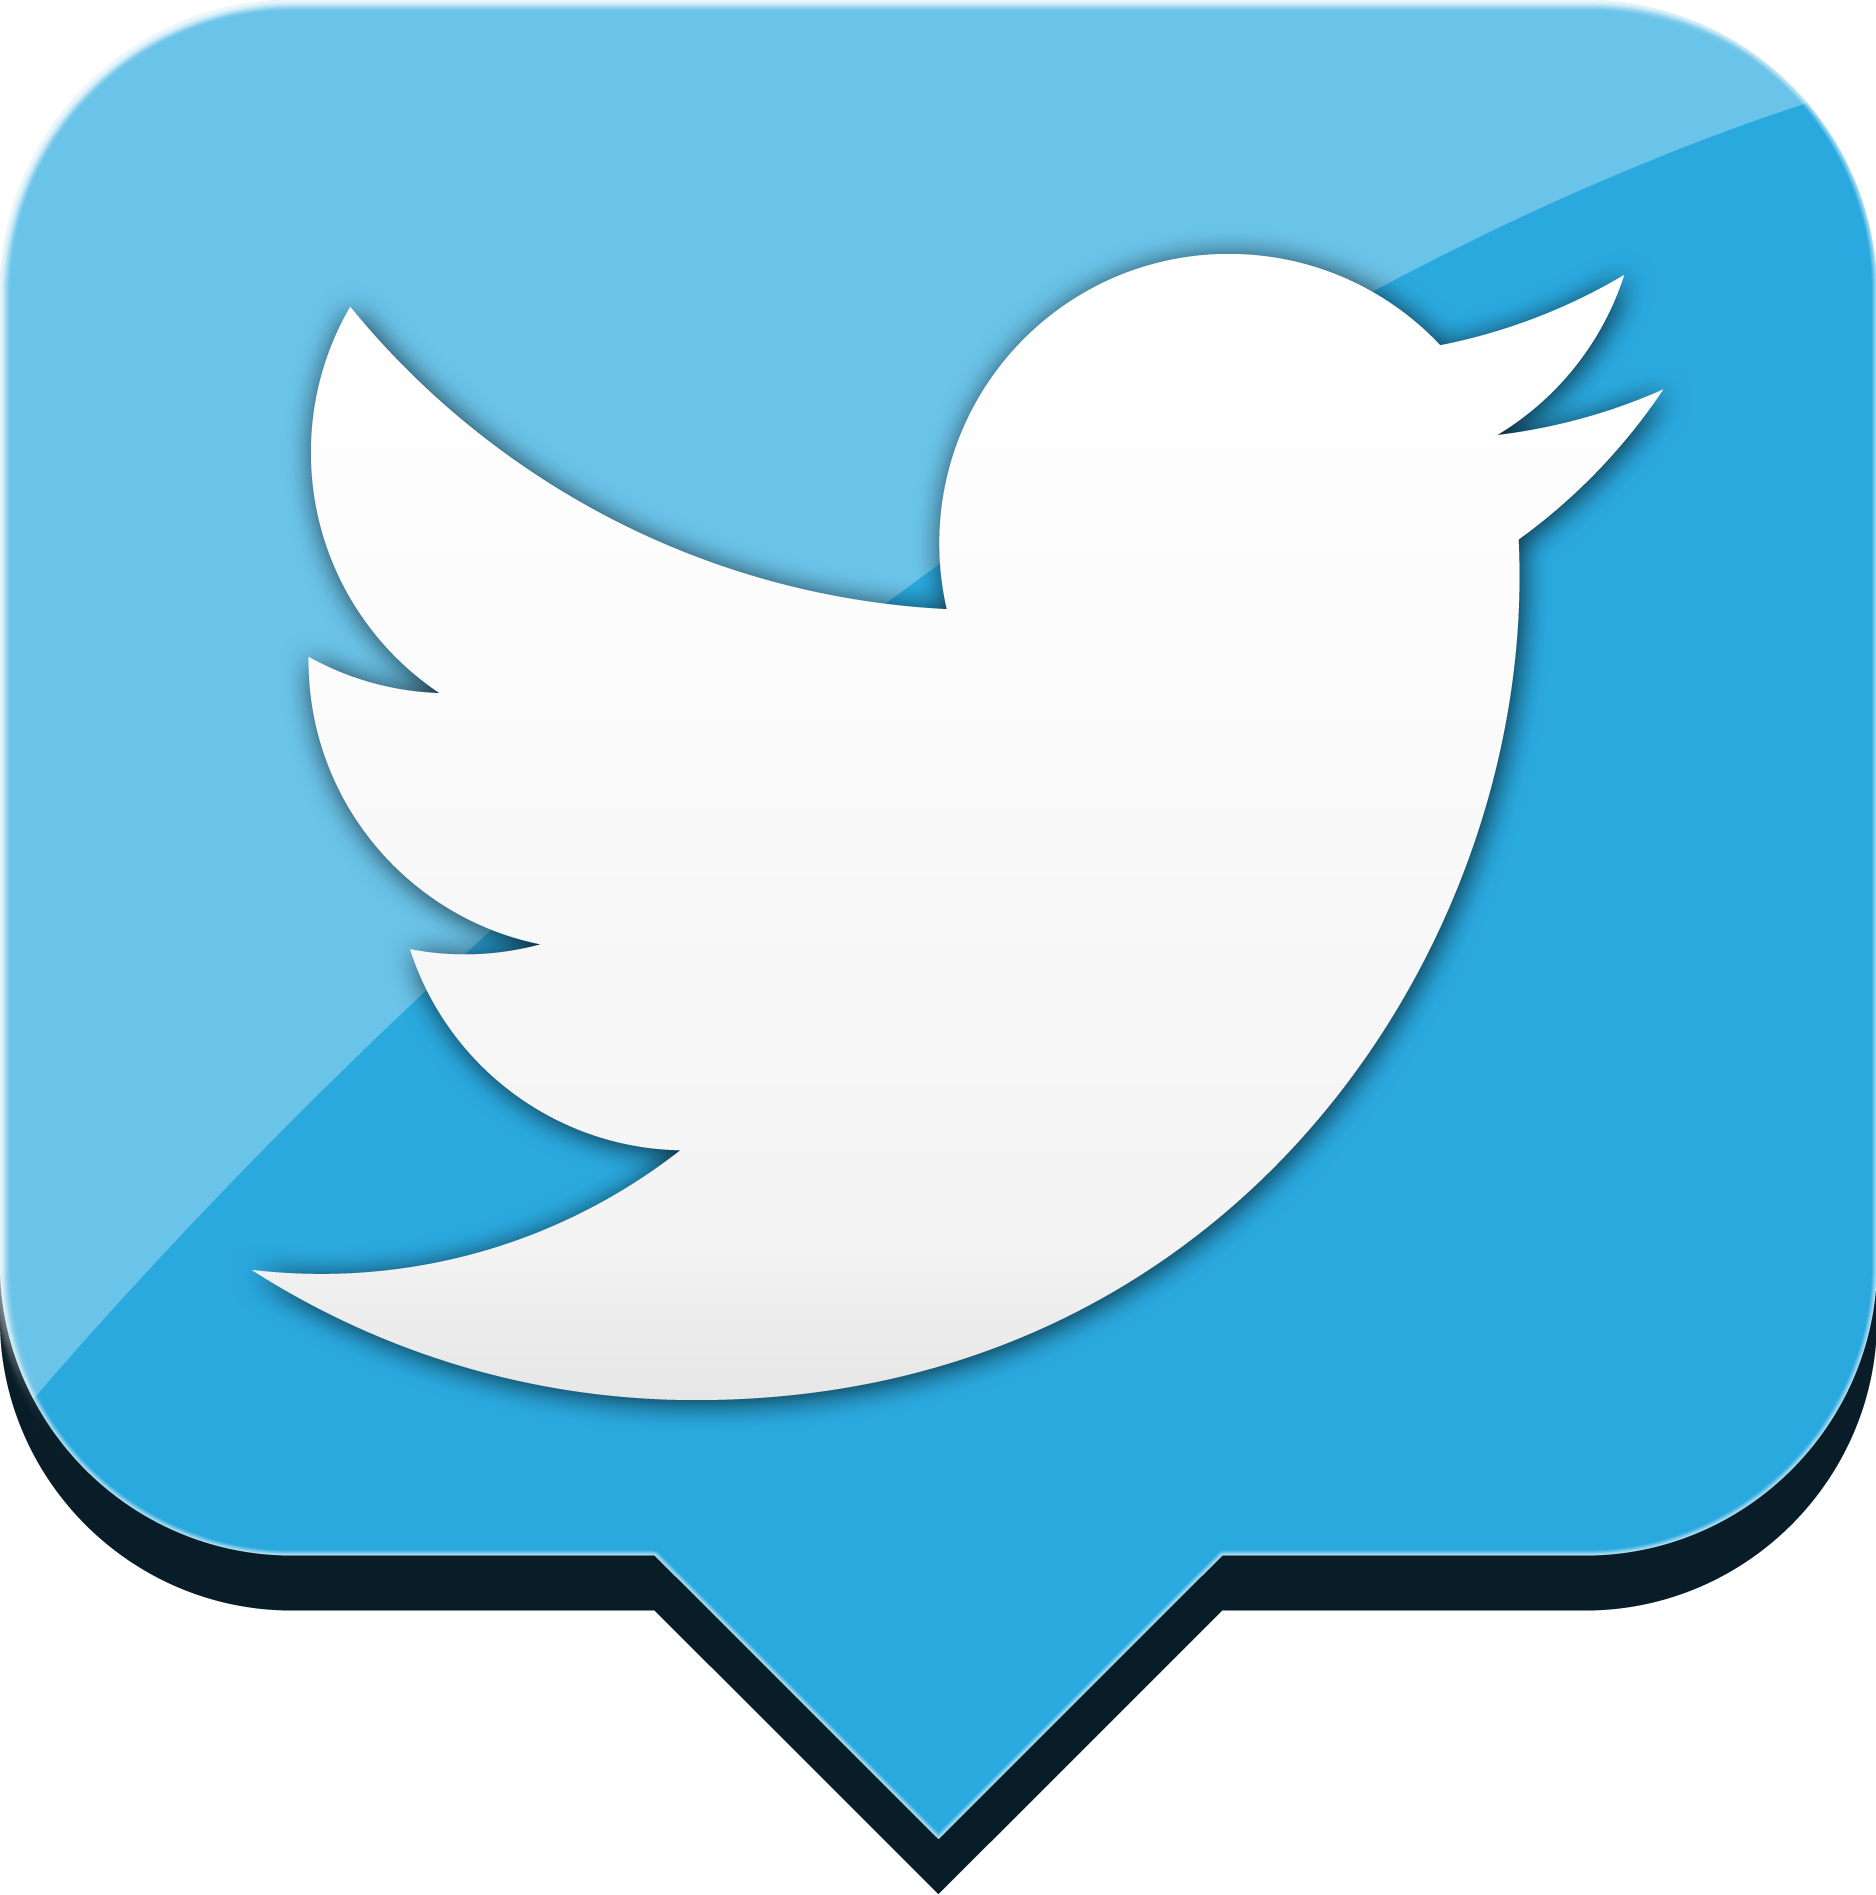 Twitter Free Png Image PNG Image - Twitter PNG